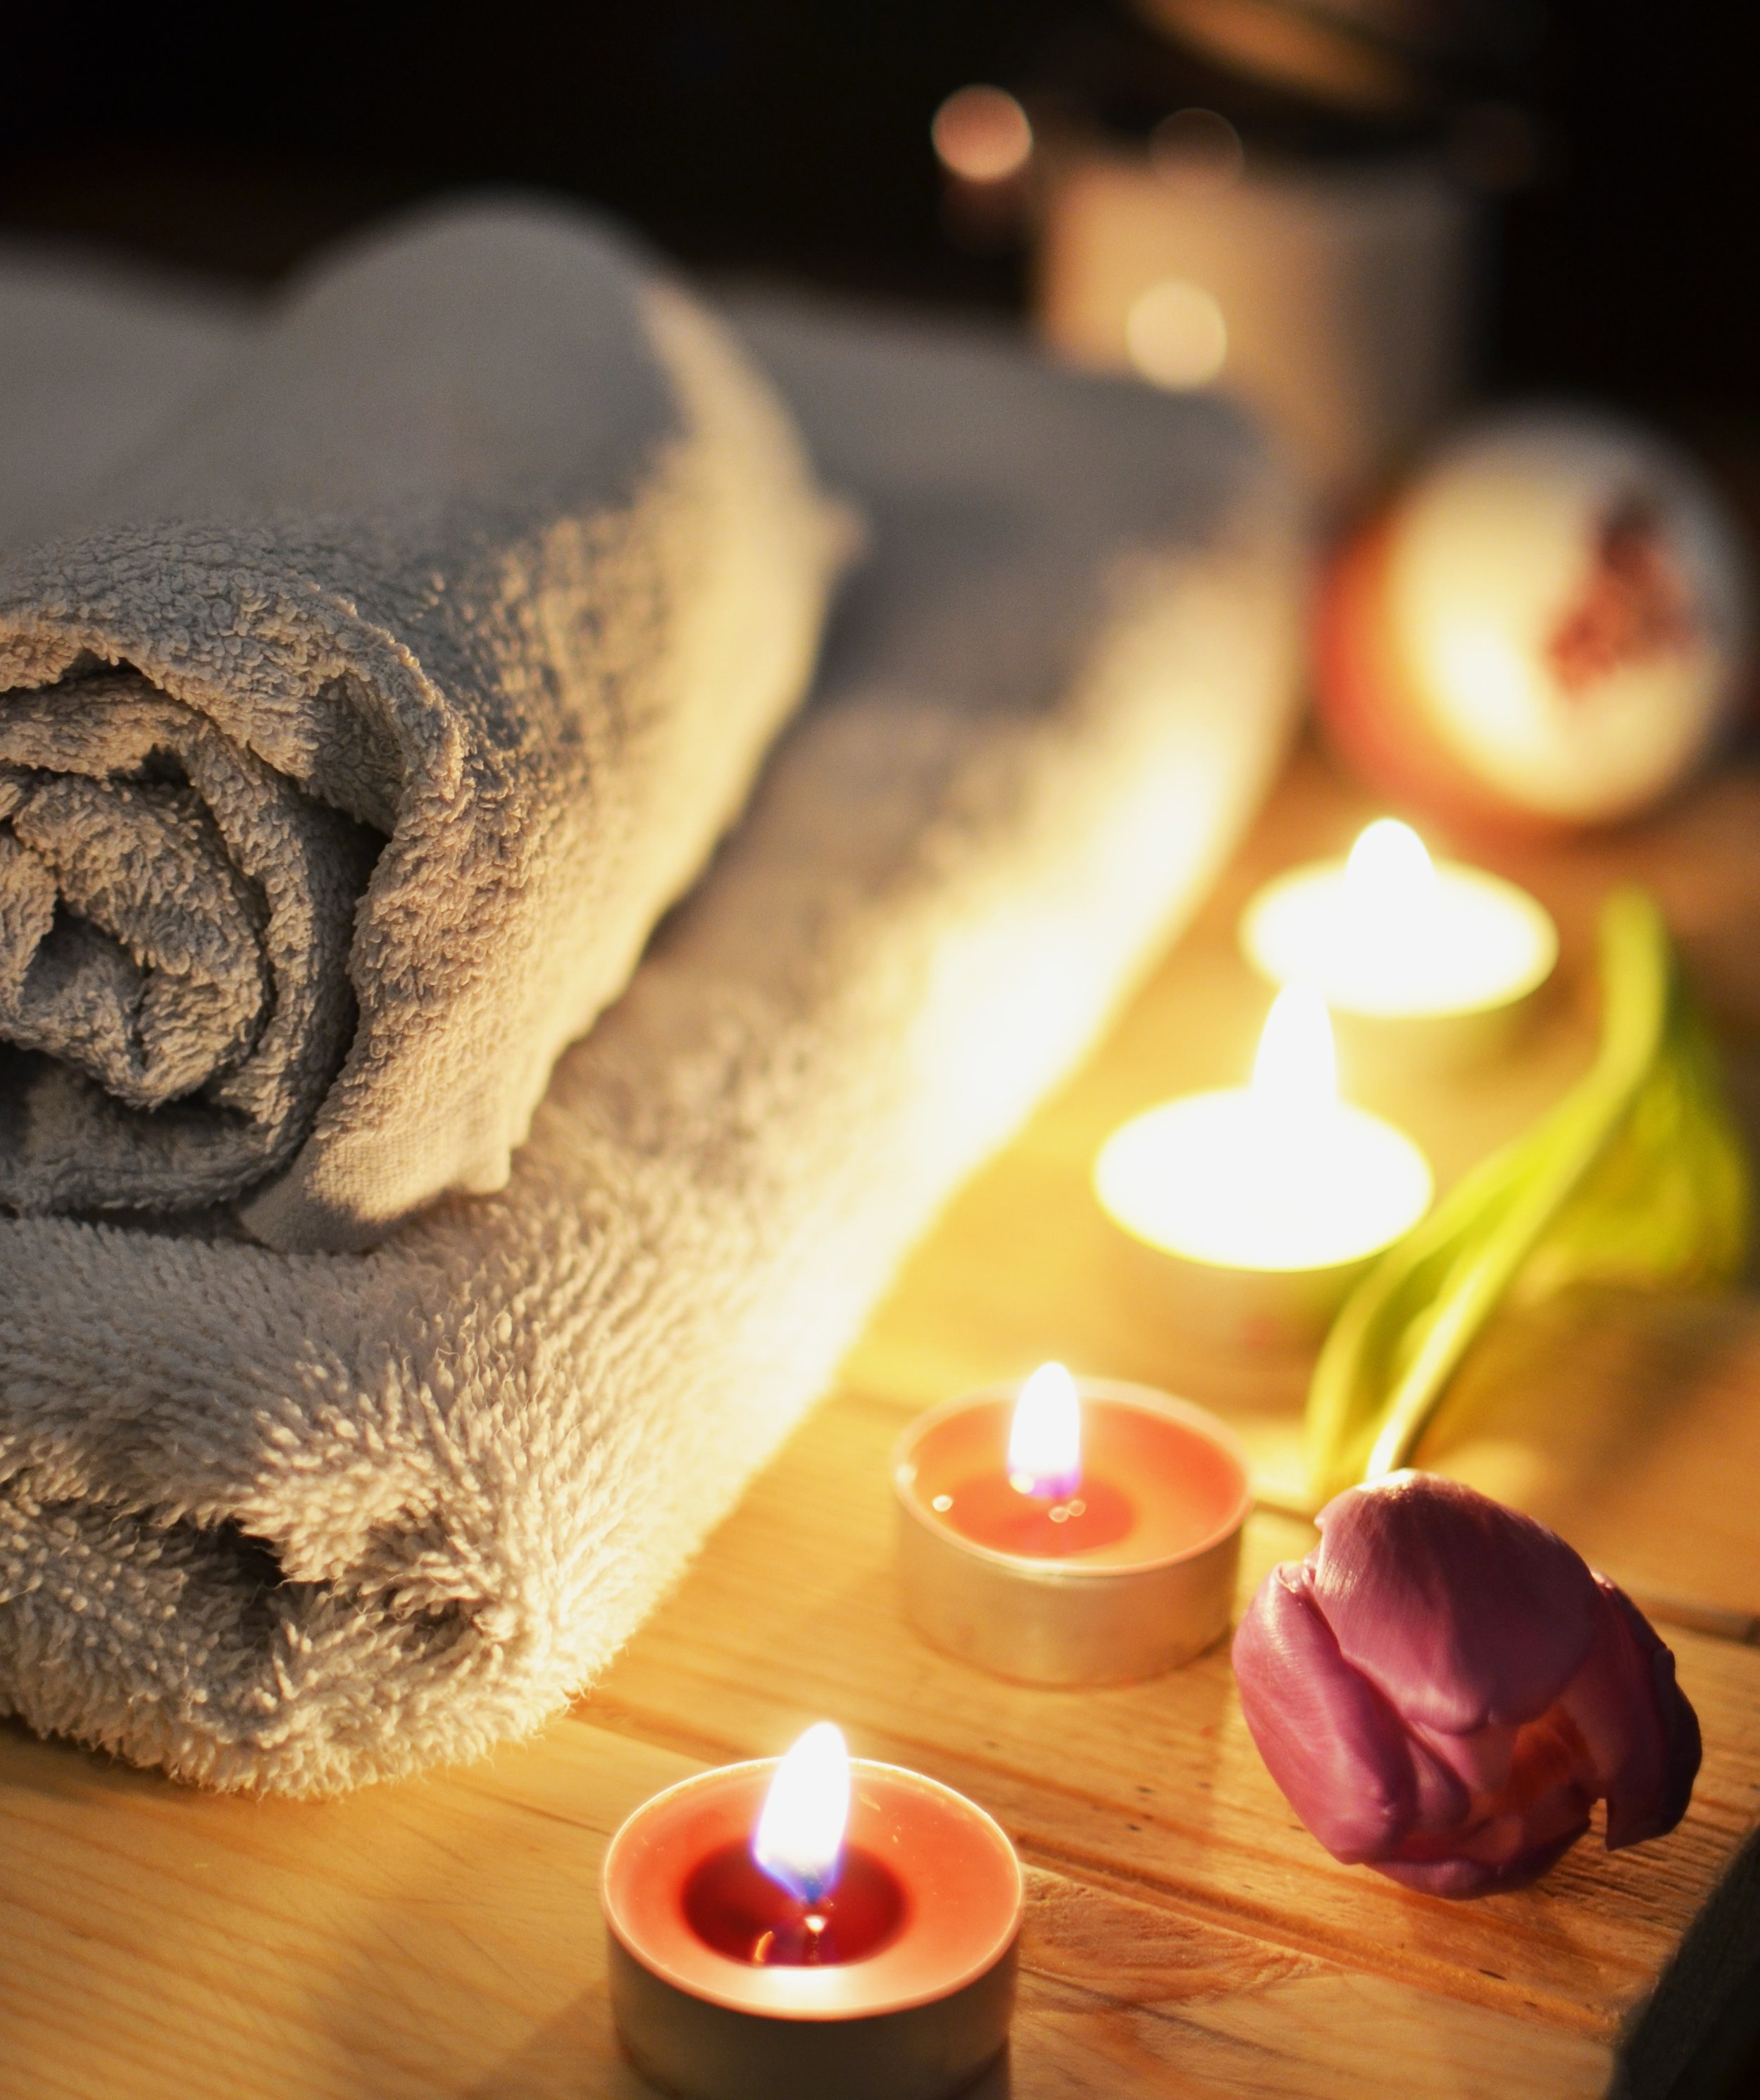 """""""Let's admit a universal truth: If we could permanently live in a spa, we would."""" - Jason Kessler, Organic Spa Magazine"""